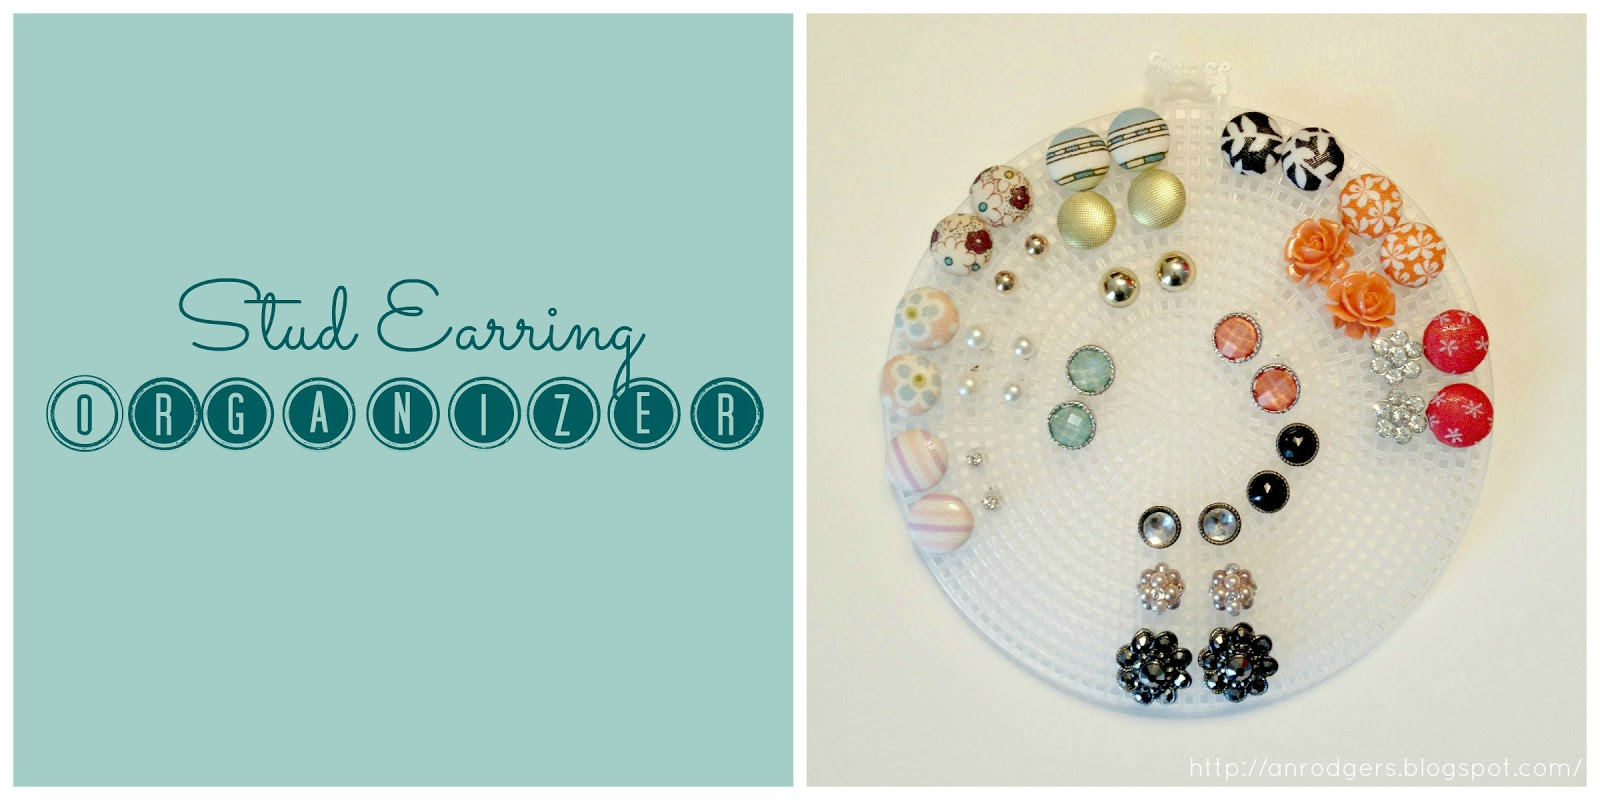 Stud Earringanizer Recently I Constructed My Own Jewelry Case (details  In A Future Post) So That I Couldanize All My Earrings, Necklaces,